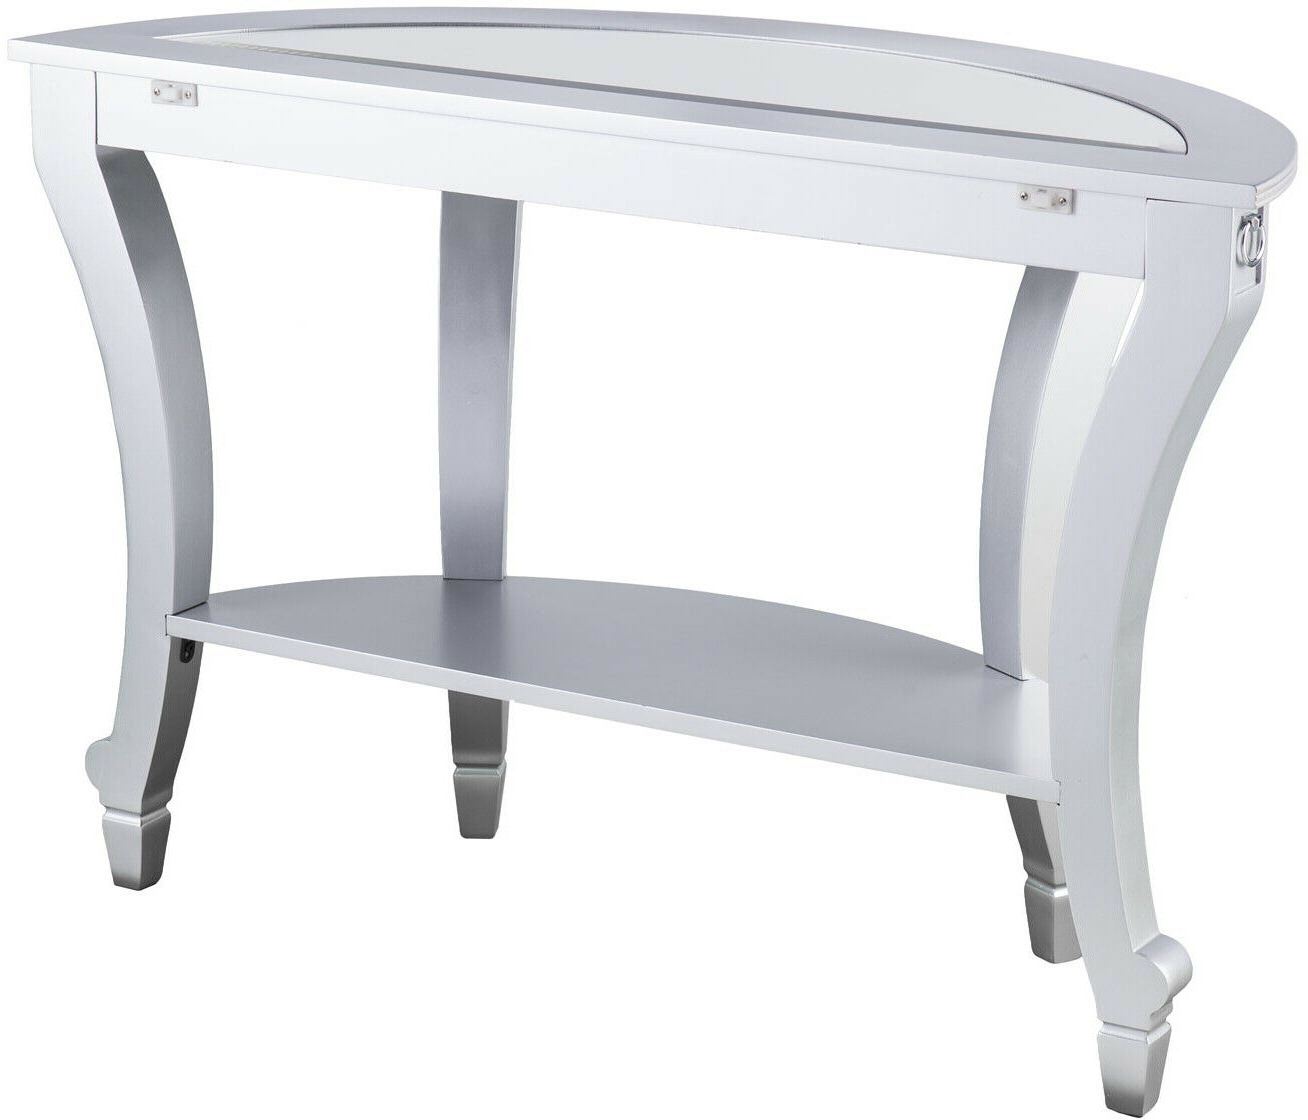 Olivia Glam Mirrored Demilune Console Table – Matte Silver For Recent Silver Orchid Olivia Glam Mirrored Round Cocktail Tables (View 17 of 20)